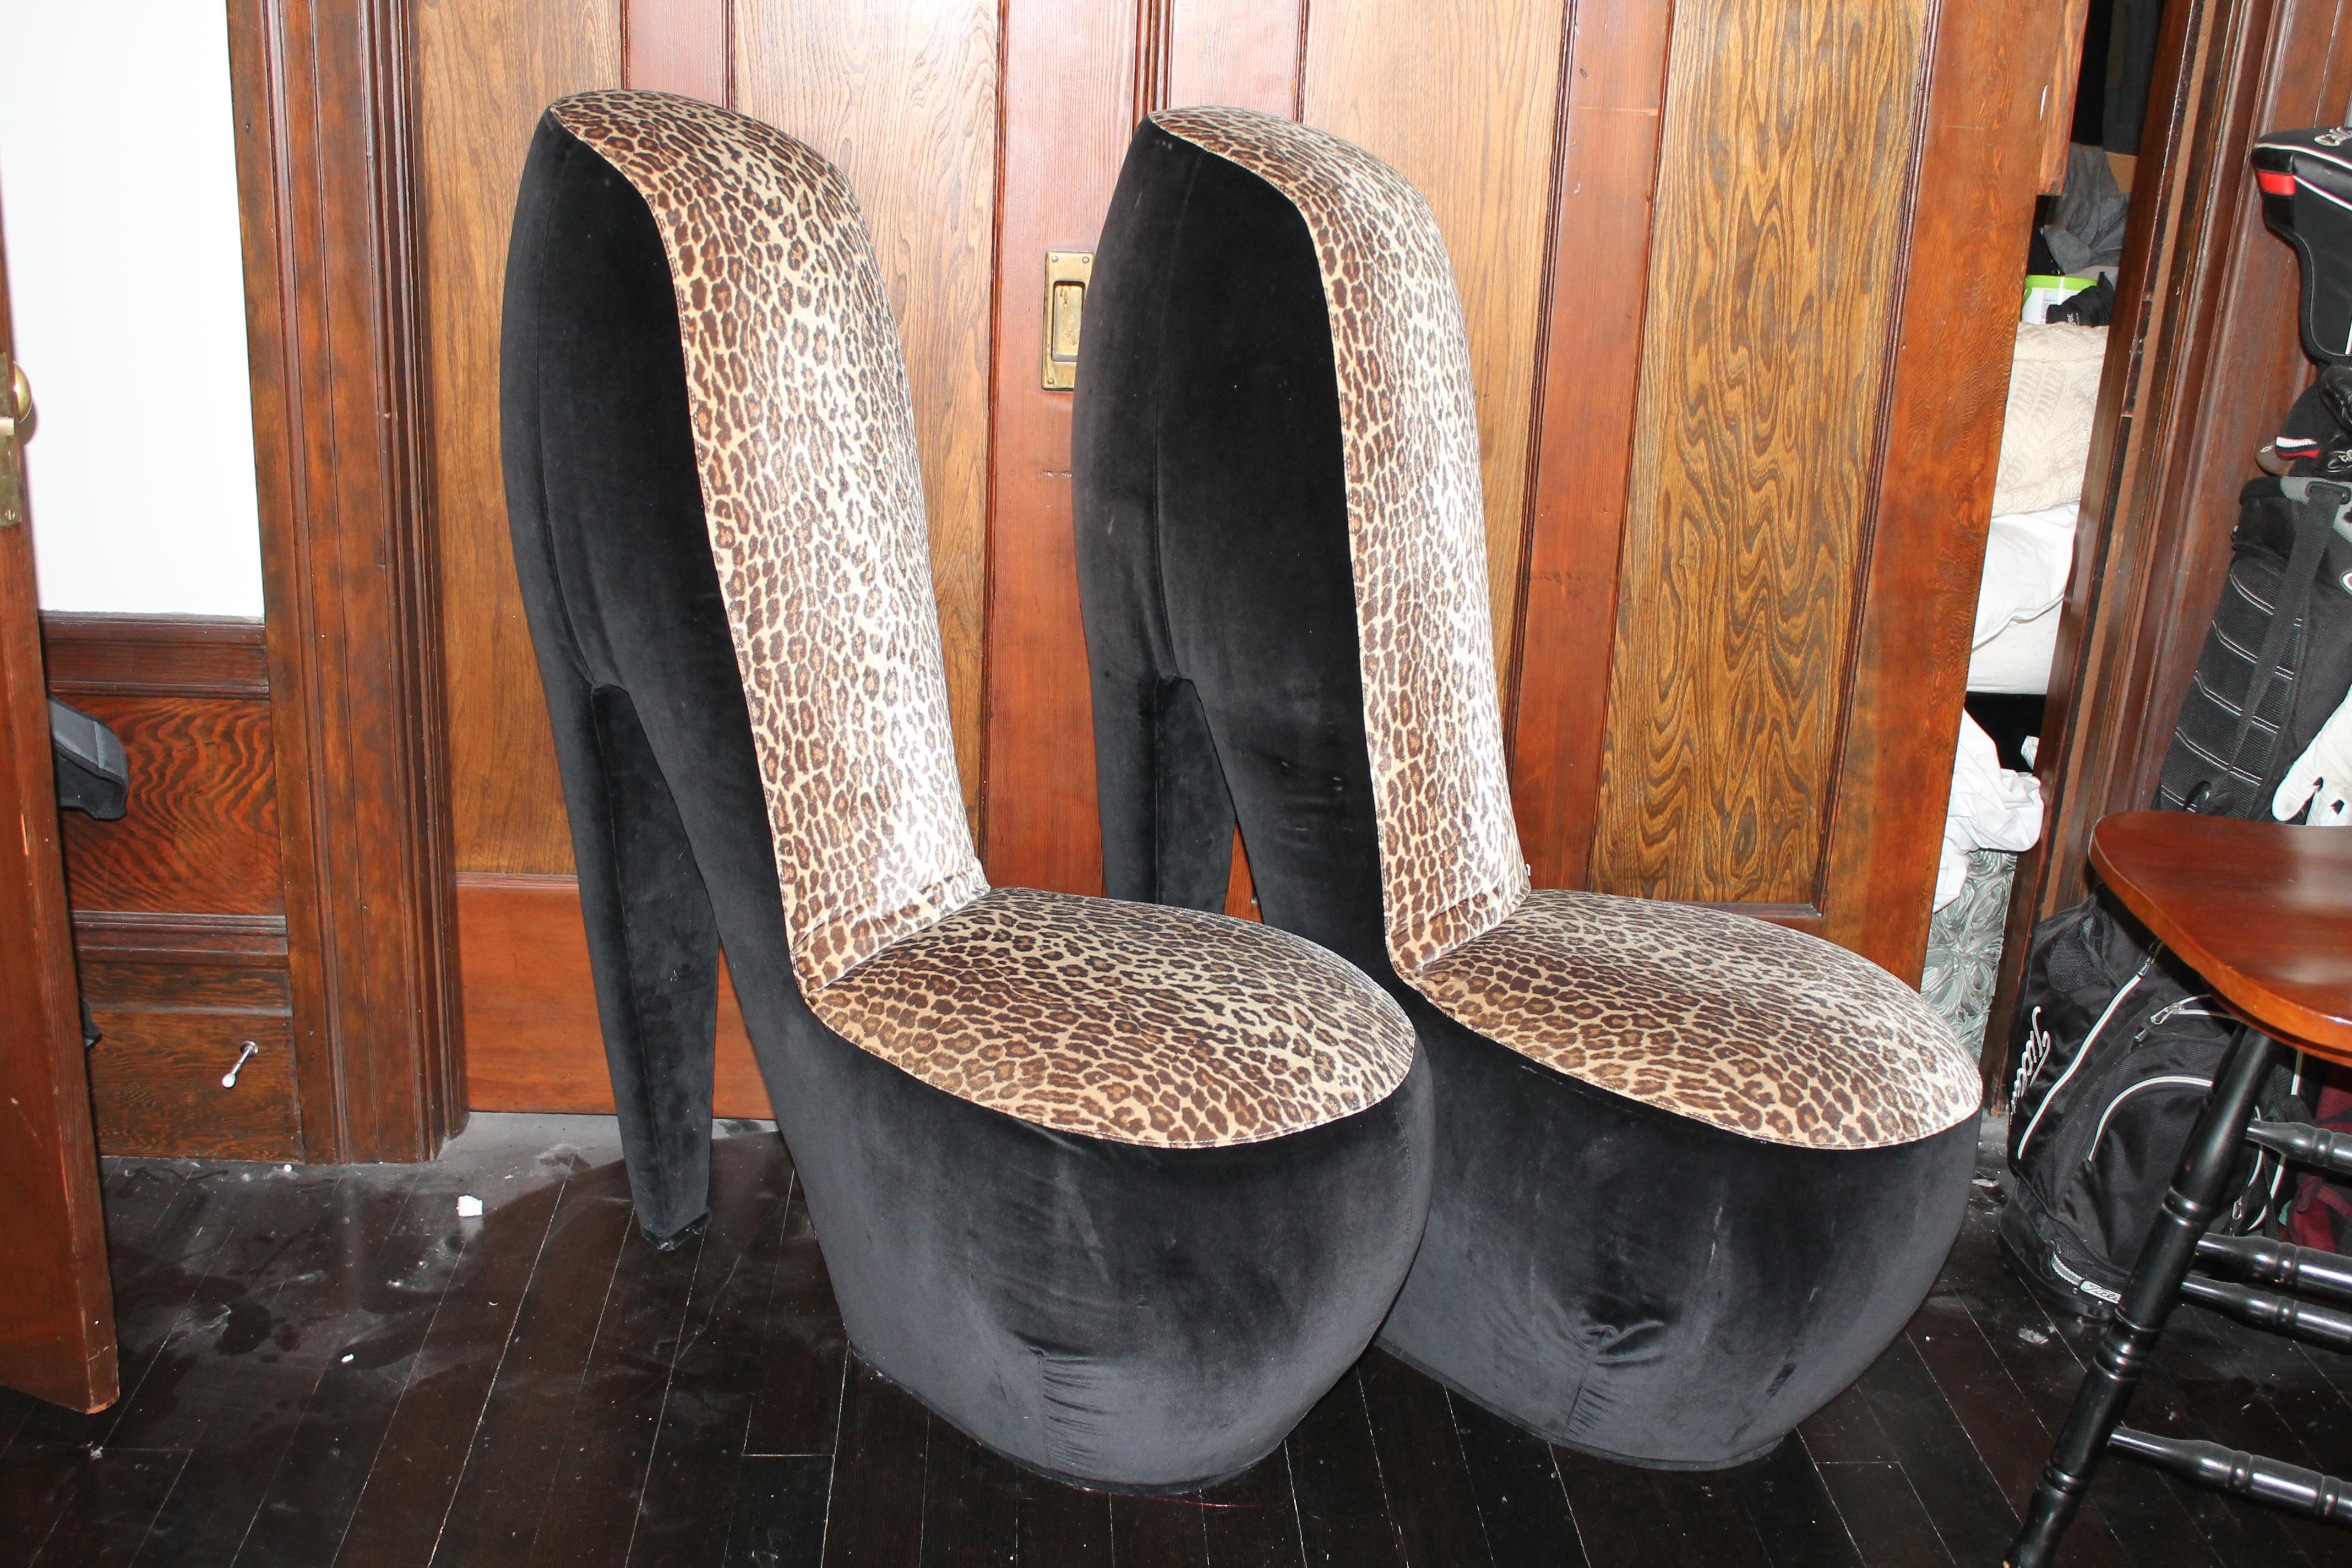 leopard high heel chair wicker that hangs from ceiling print shoe chairs a pair chairish these two side have been in my family for over 20 years